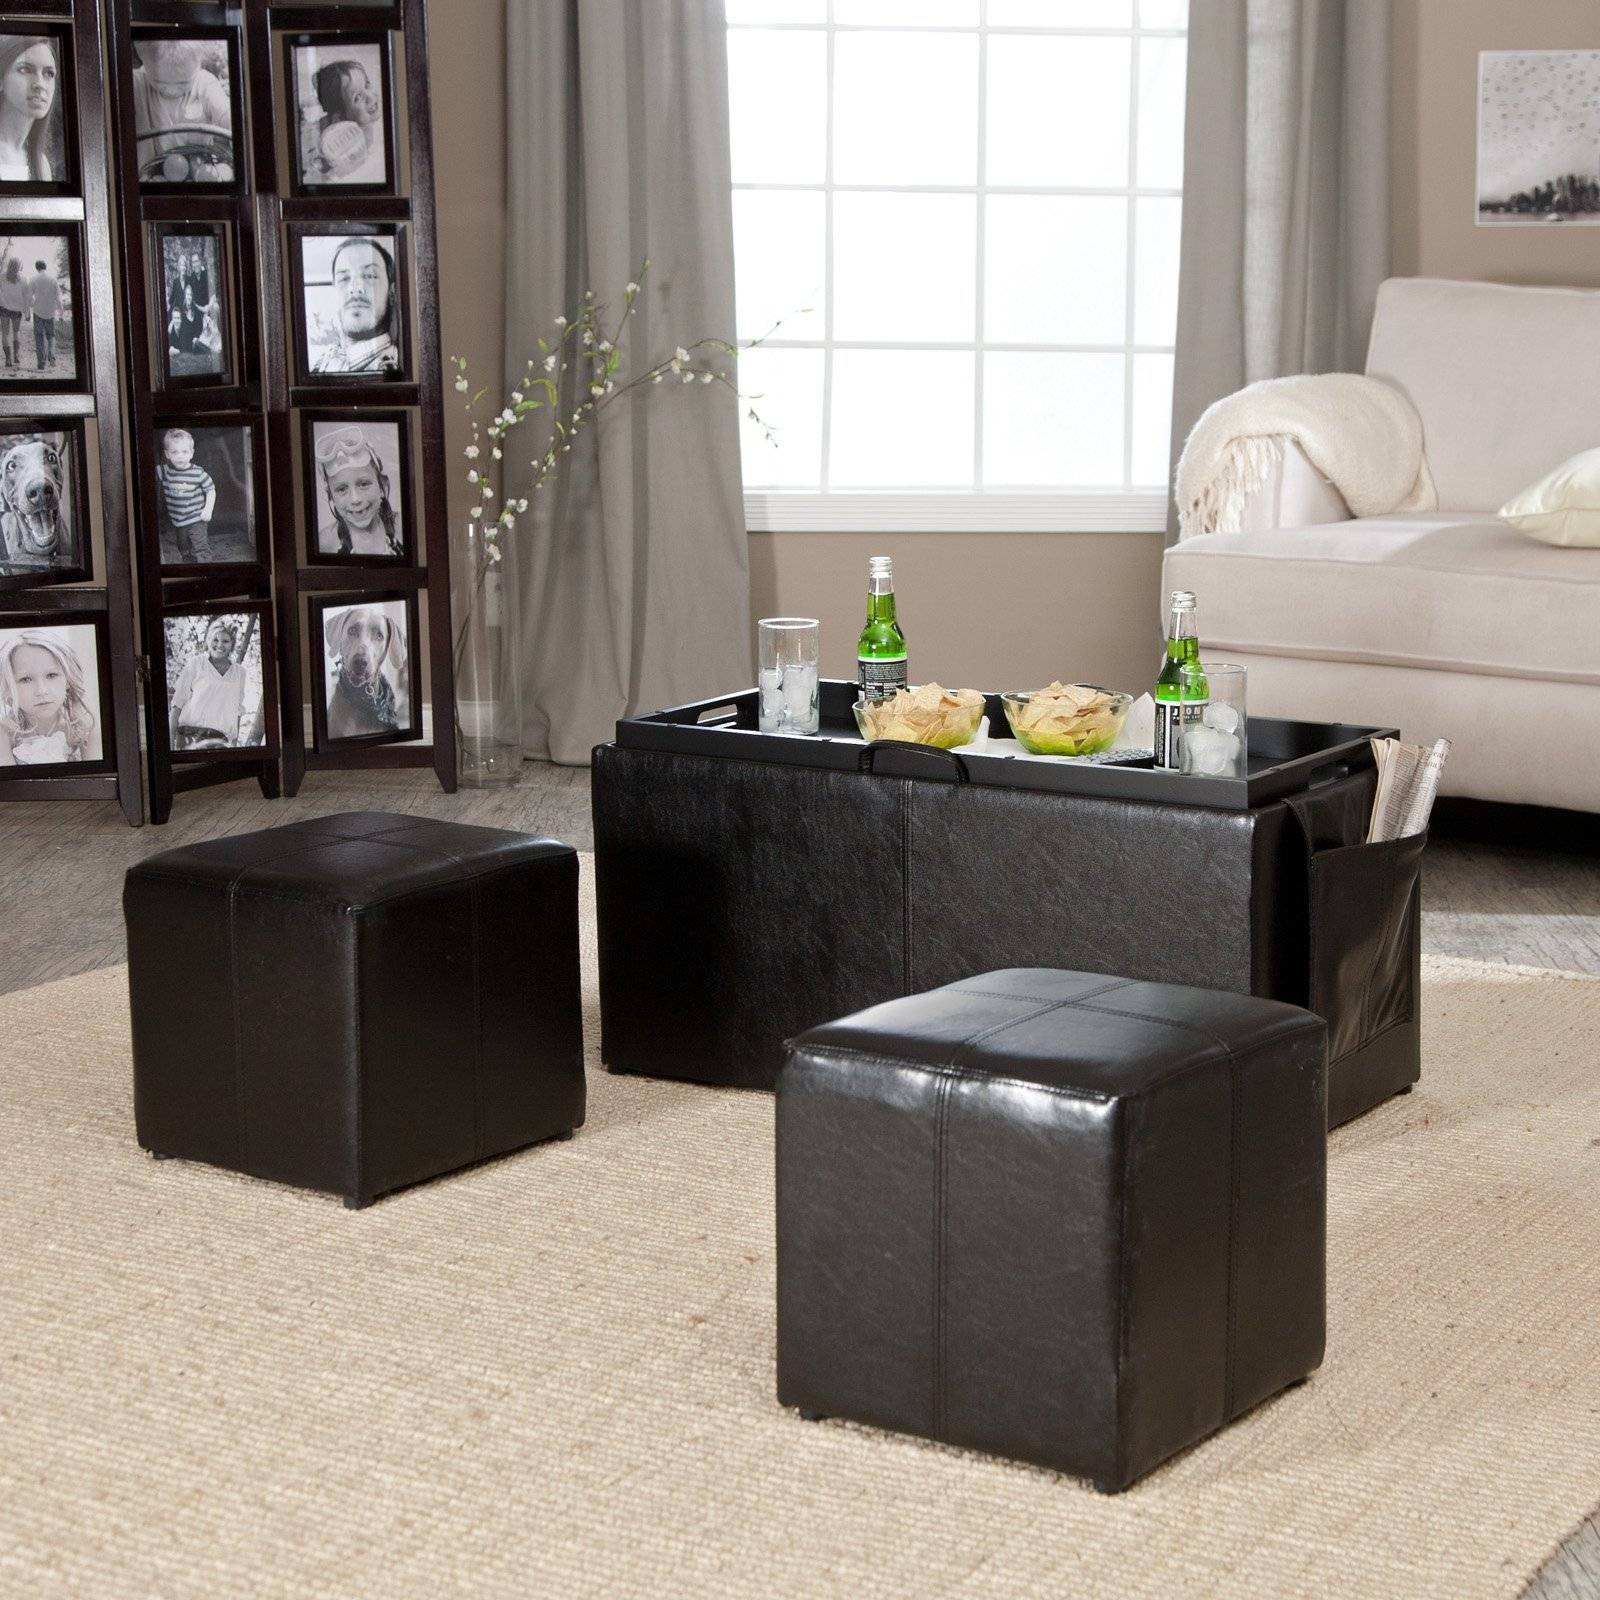 Hartley Coffee Table Storage Ottoman With Tray – Side Ottomans Inside Brown Leather Ottoman Coffee Tables (View 30 of 30)